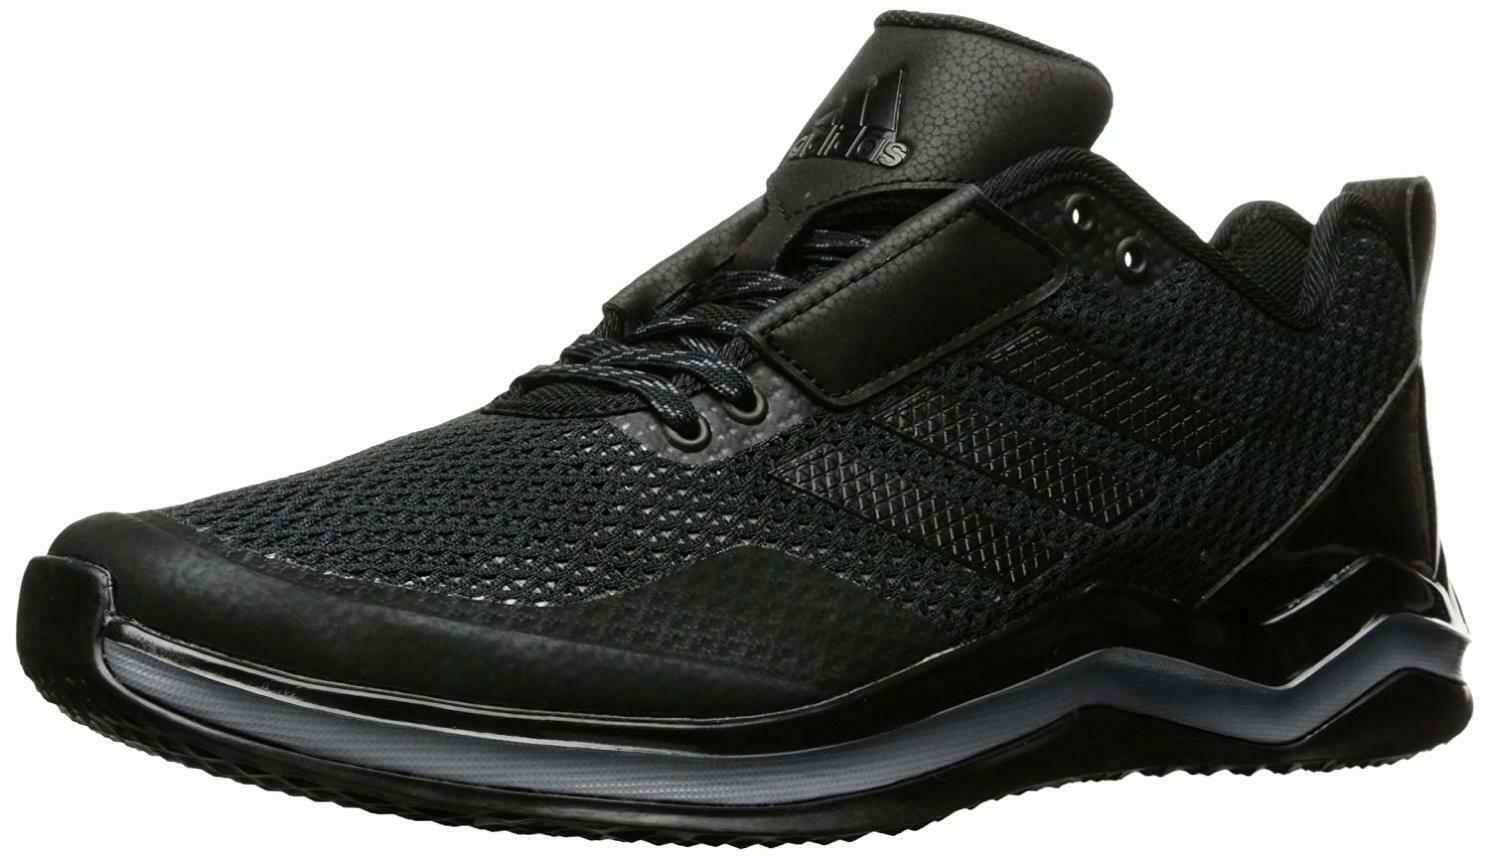 Adidas Performance Men's Speed 3.0 Cross-Trainer shoes